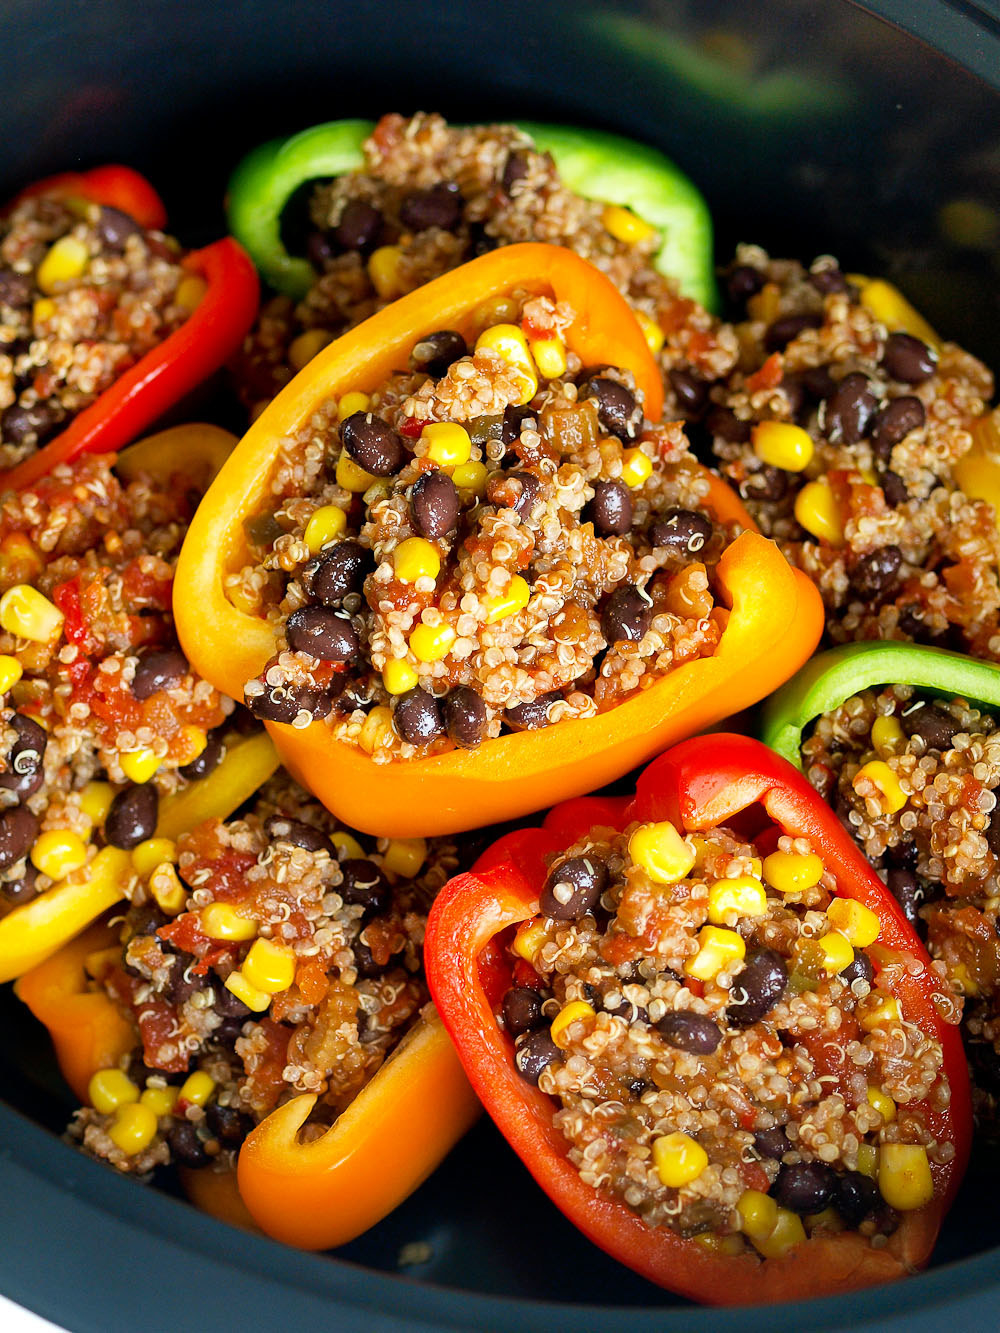 Stuffed peppers taste just as great cold as they do when they're fresh, IMHO. Recipe here.